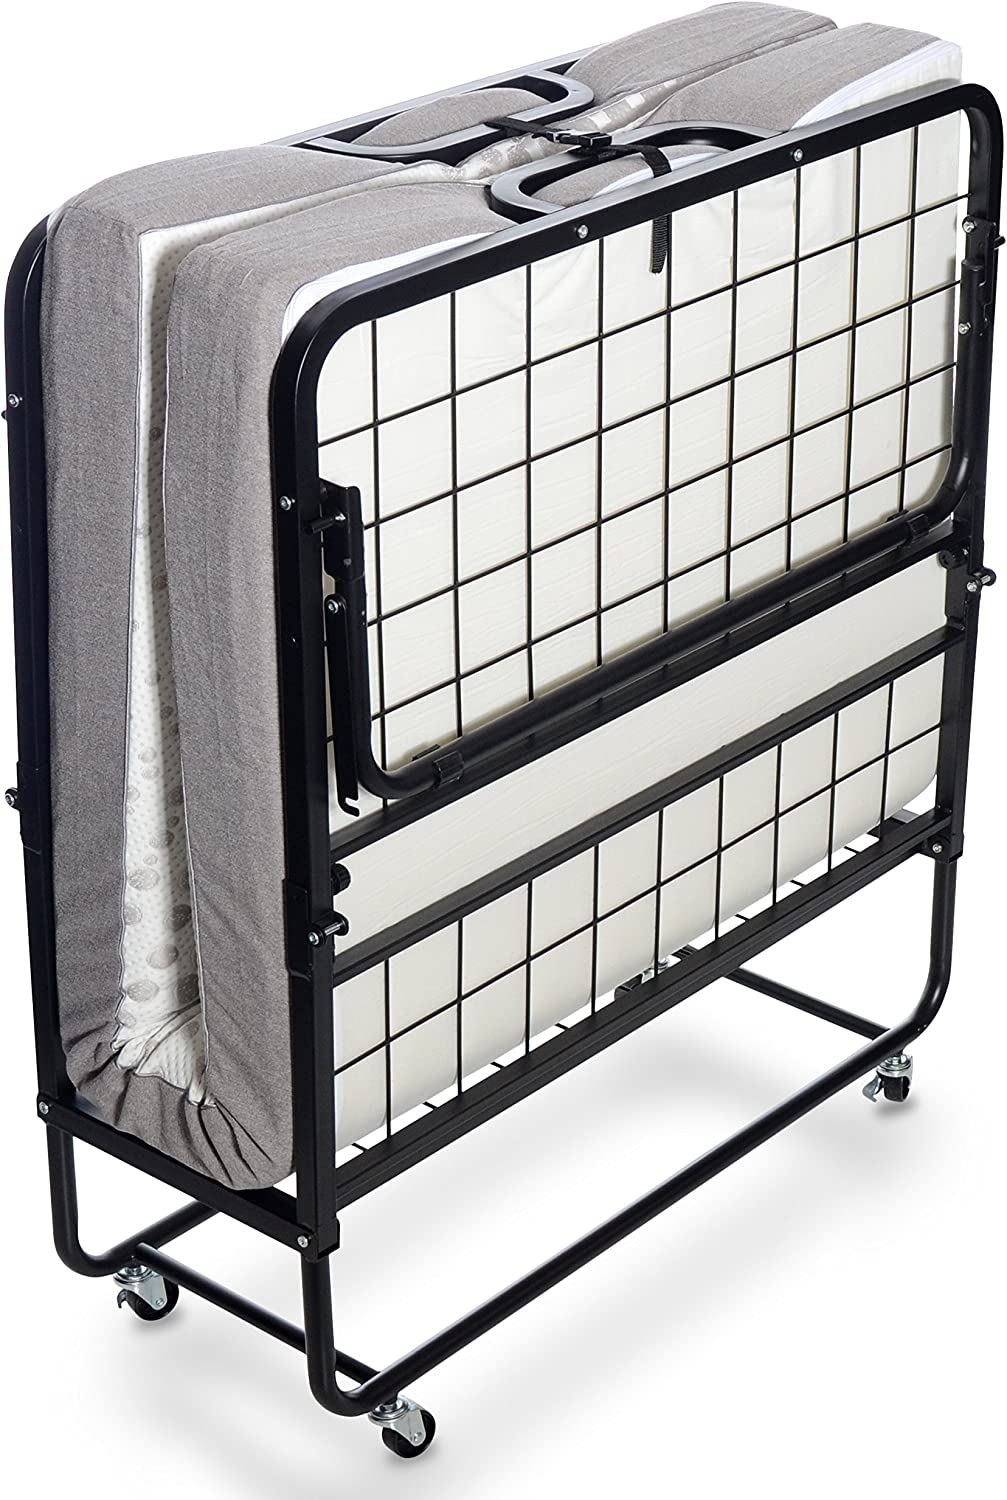 - Amazon.com: Milliard Diplomat Folding Bed – Twin Size - With